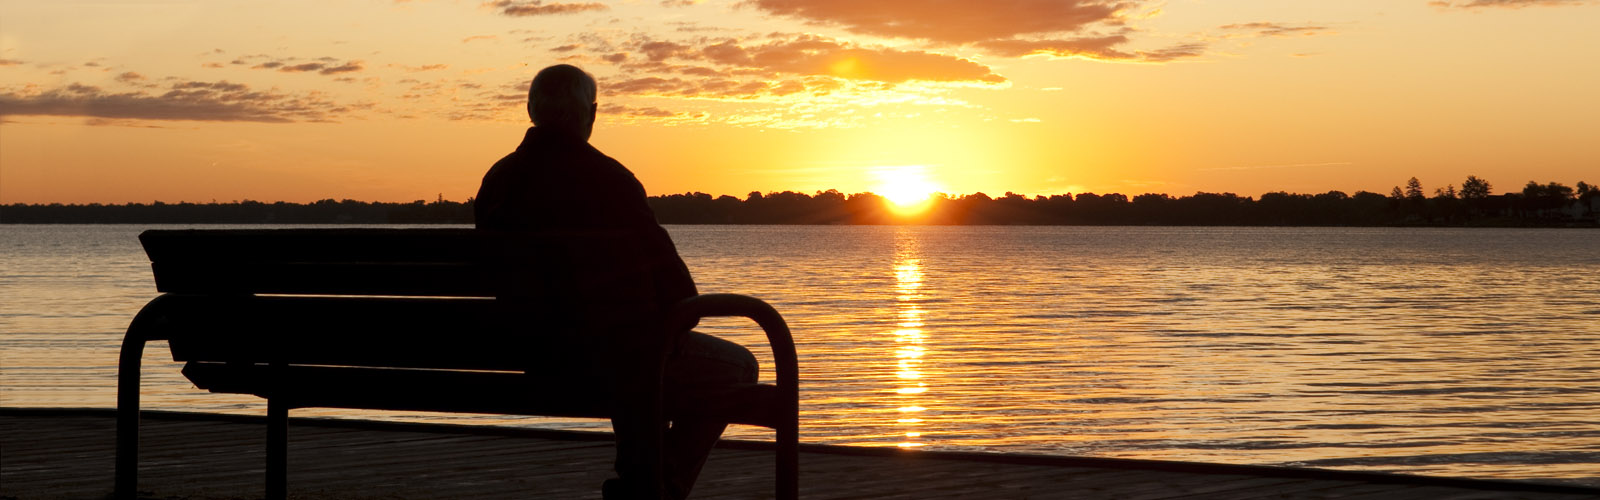 Man on bench at sunset